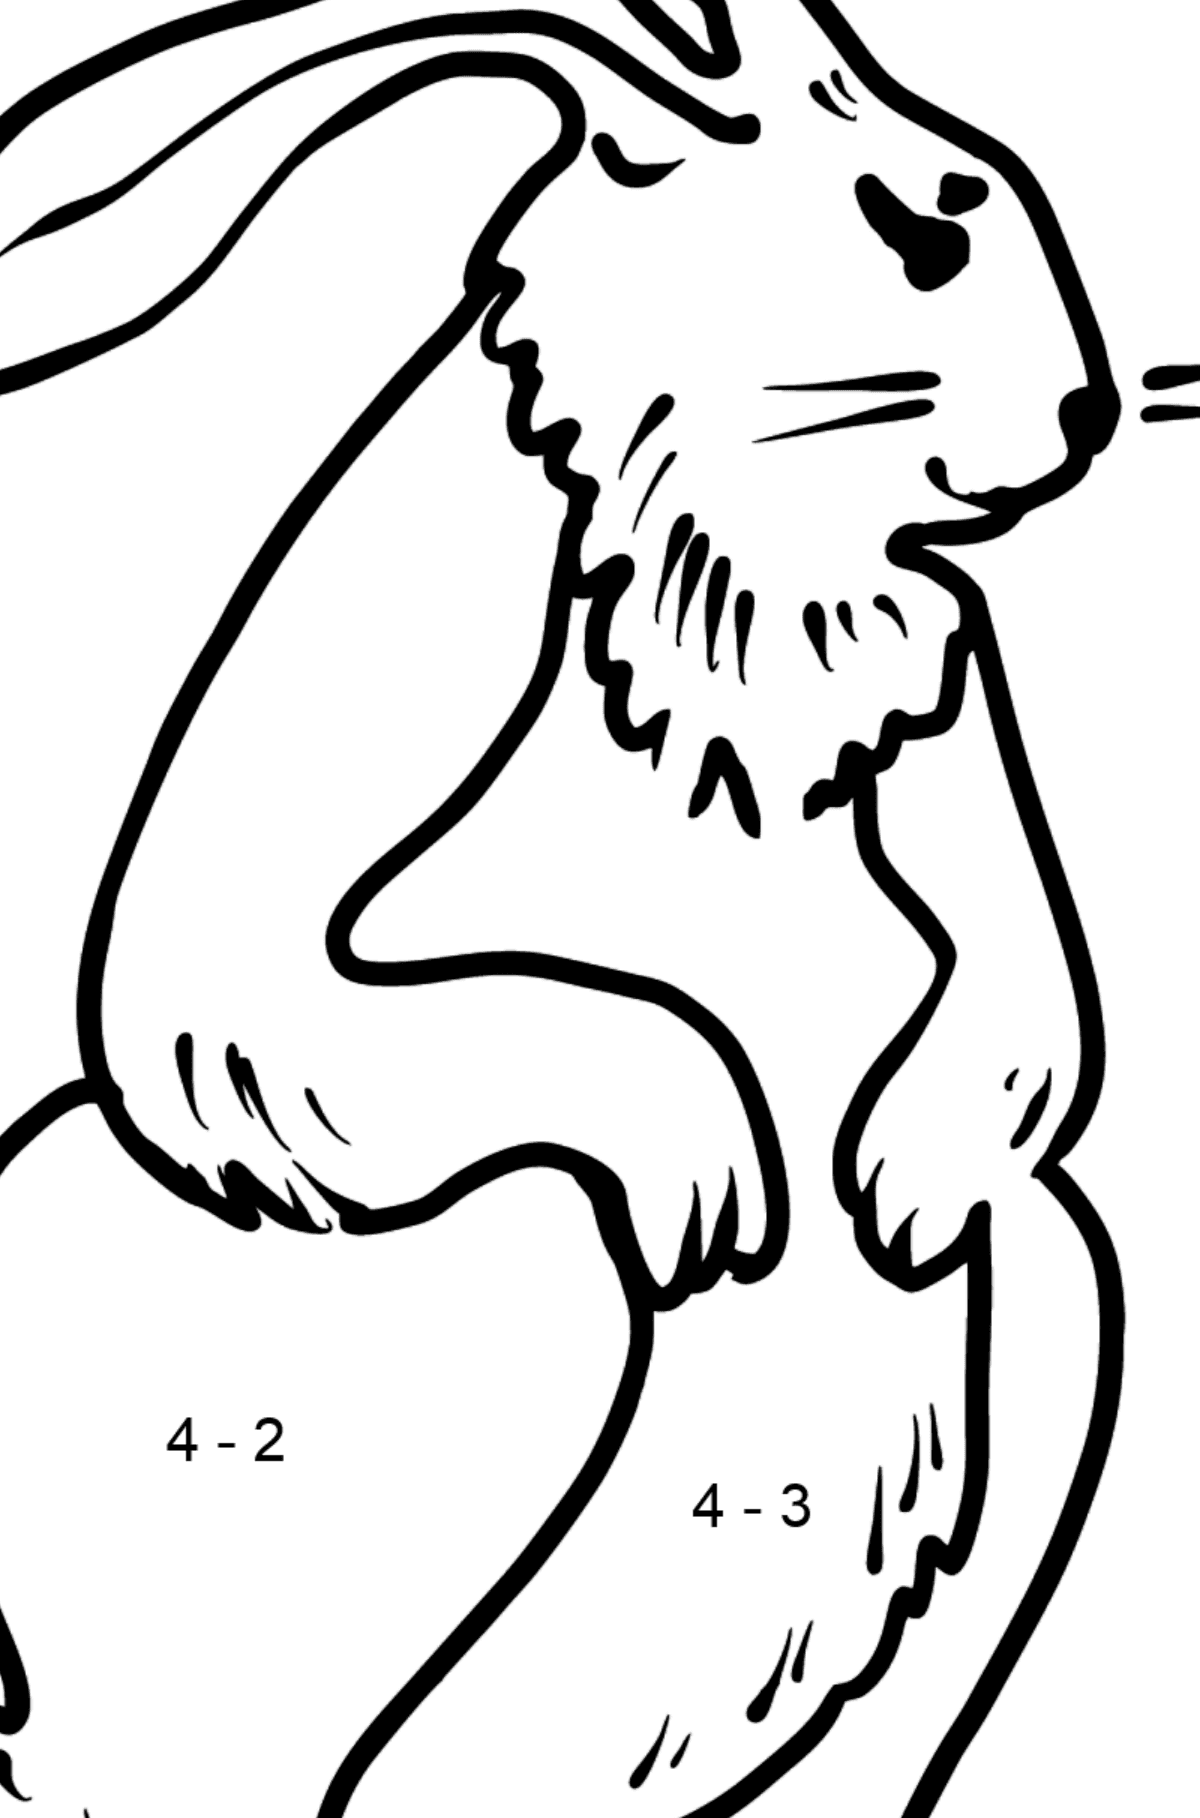 Rabbit coloring page - Math Coloring - Subtraction for Kids